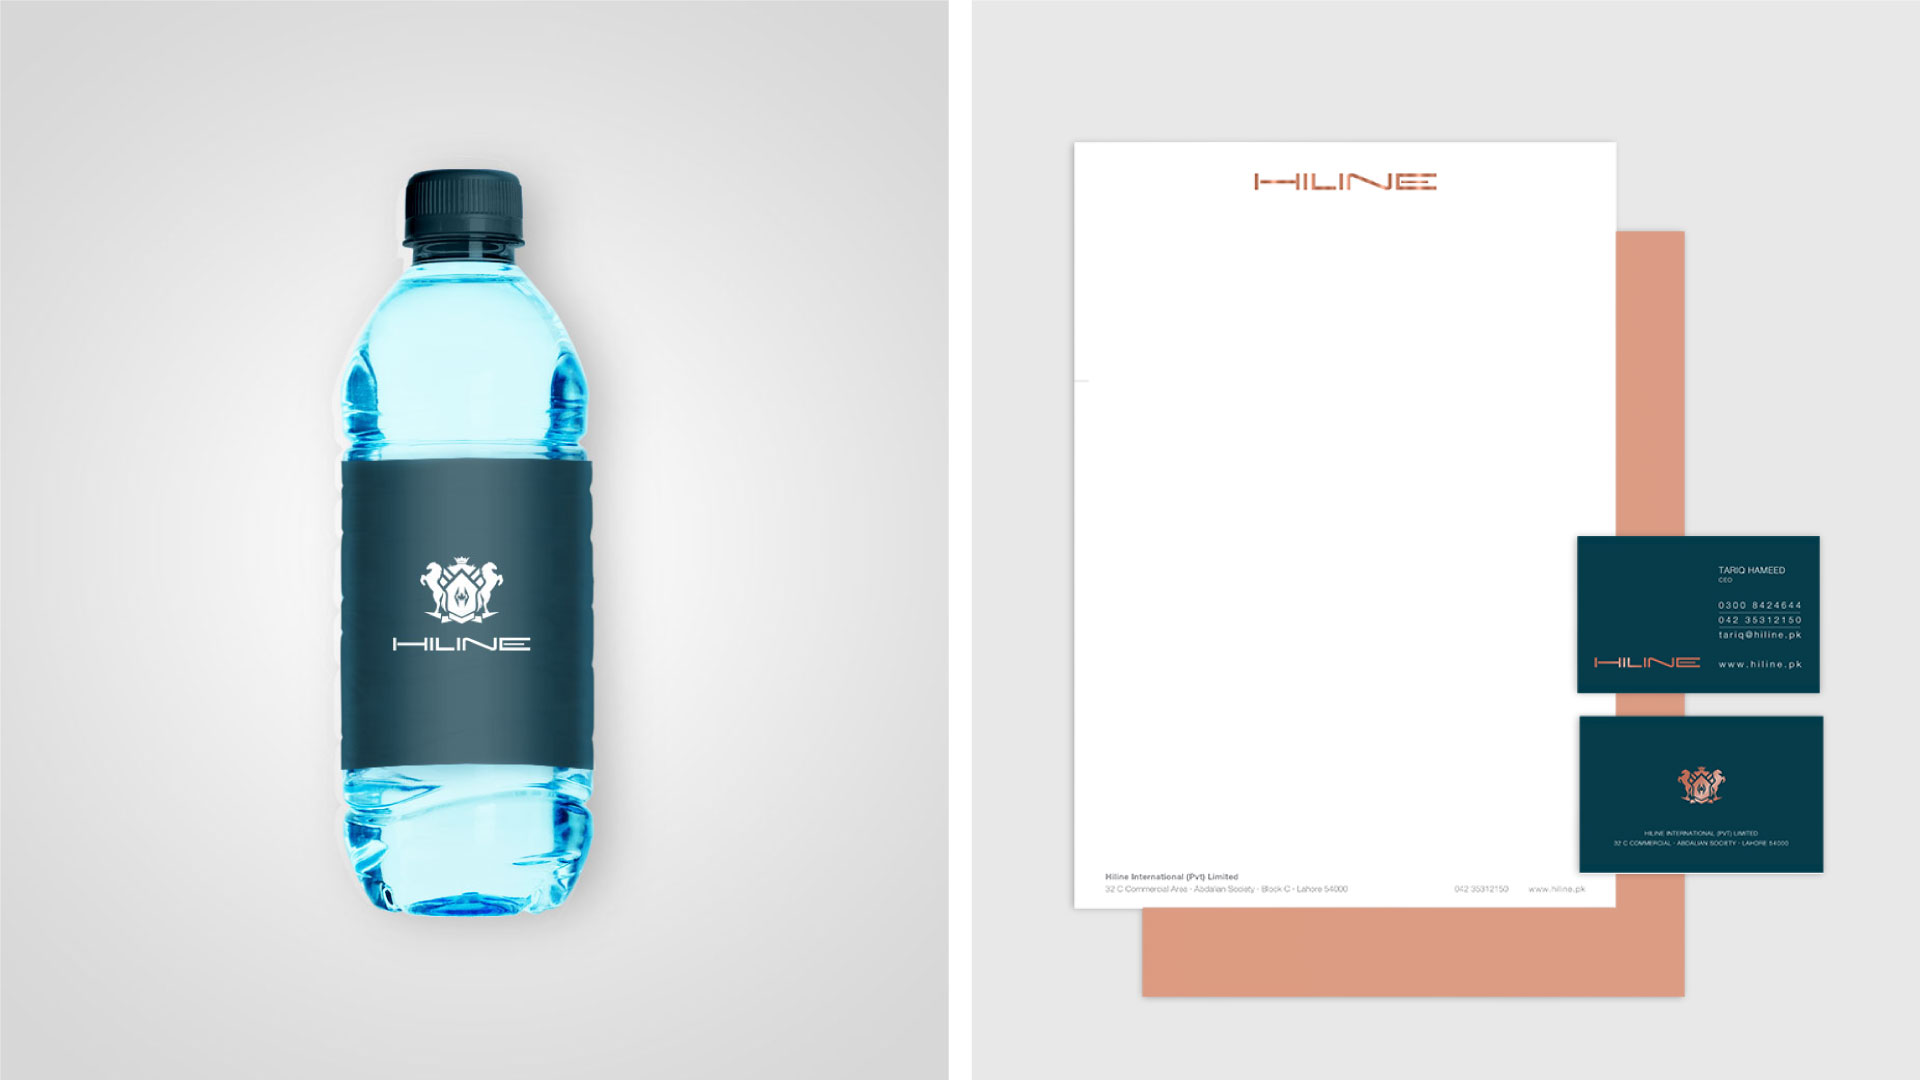 hiline-brand-logo-design-by-mapleweb-vancouver-canada-water-bottle-business-card-and-letterhead-mock